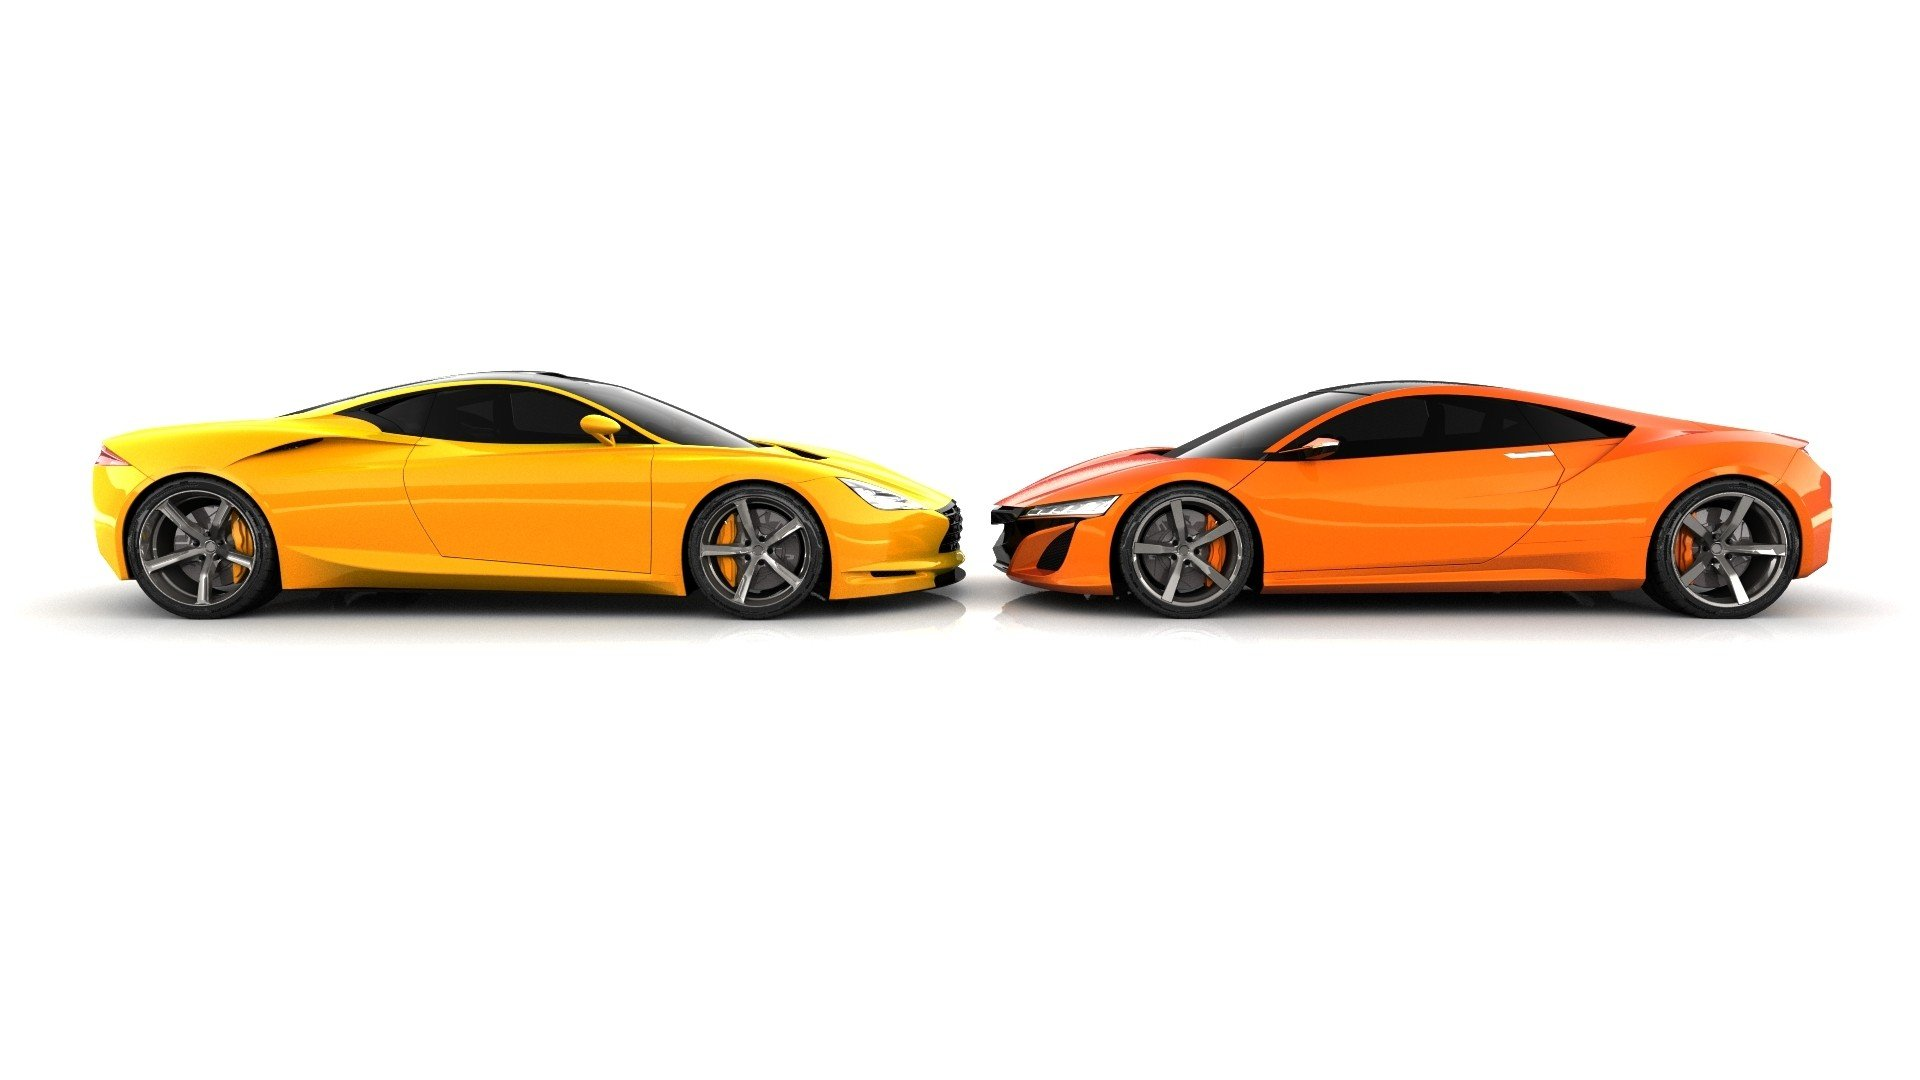 Cars concept art vehicles Infiniti concept cars Acura Acura NSX white background side view ...